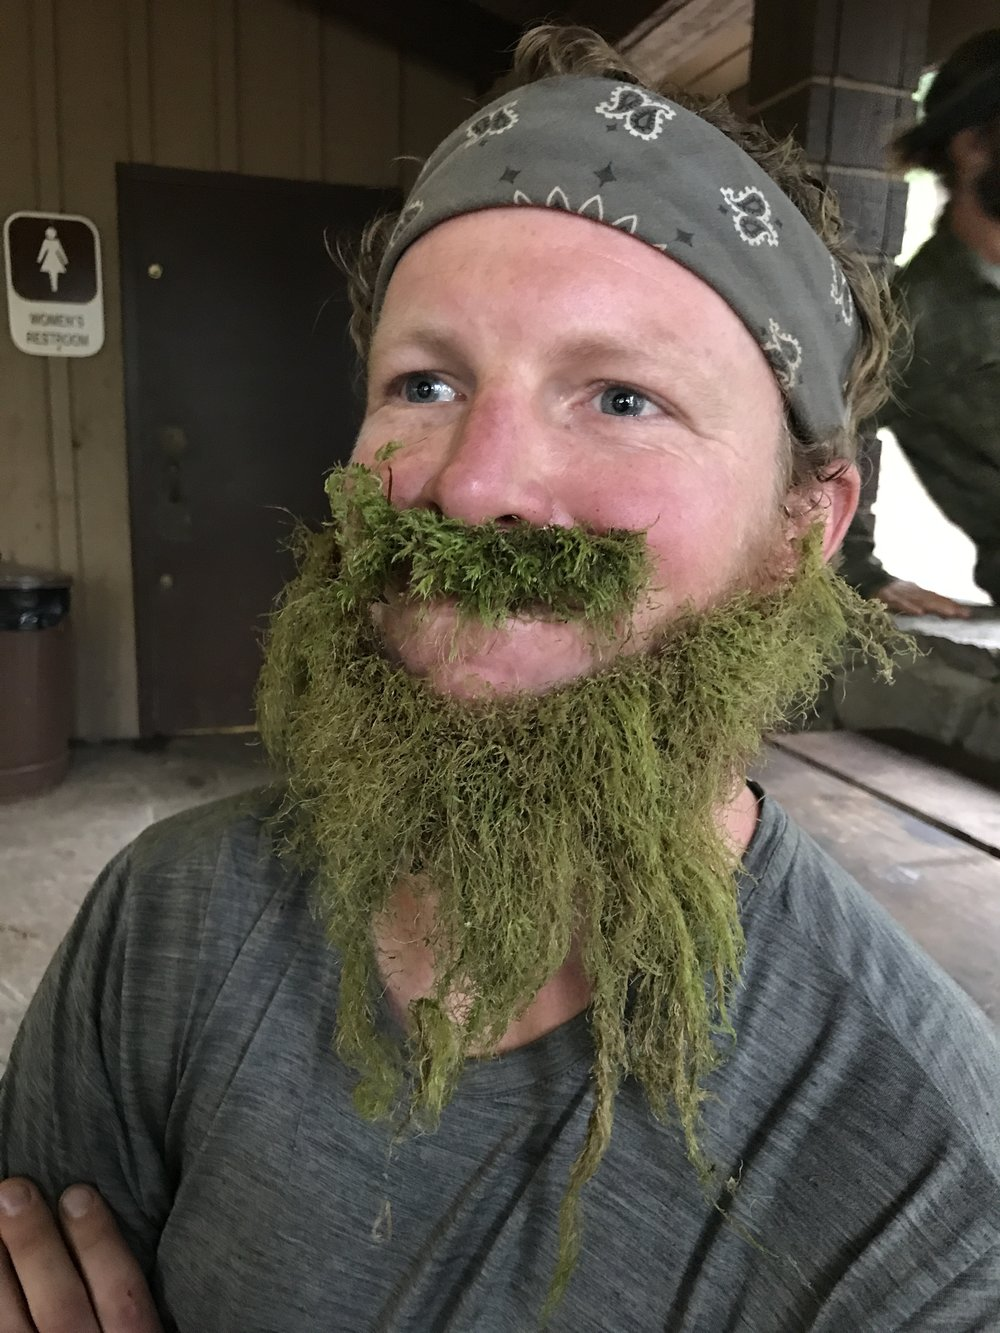 Link in a lichen beard